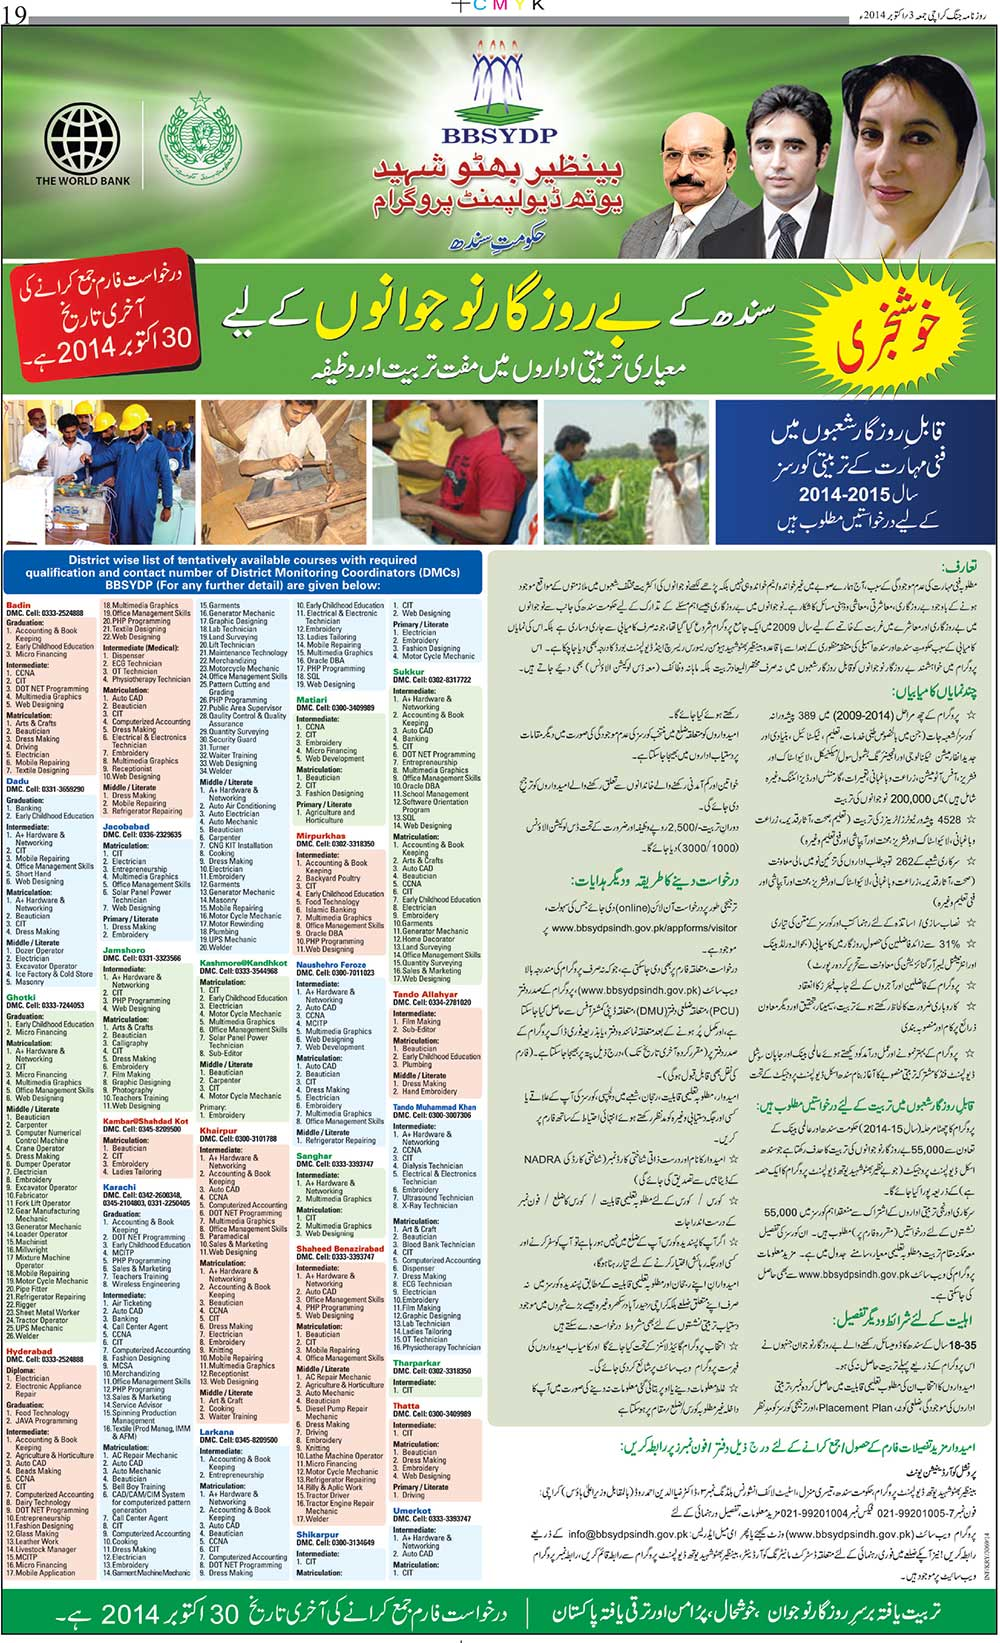 benazir bhutto youth development program registration courses  benazir bhutto youth development program registration courses 2014 matric inter diploma